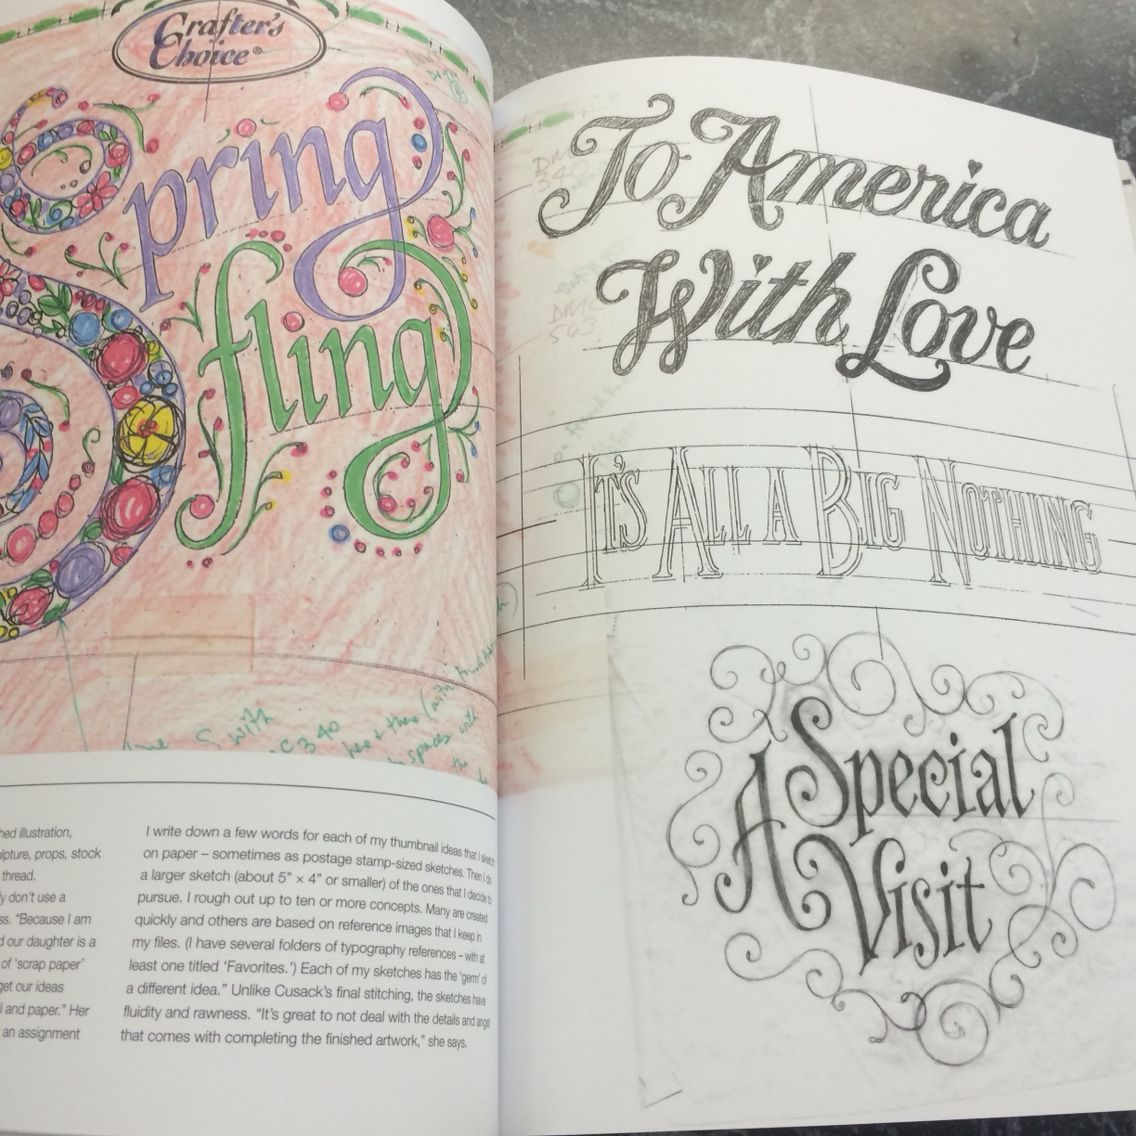 So my art teacher let me read one of her books on typography and let's just say my mind is blown